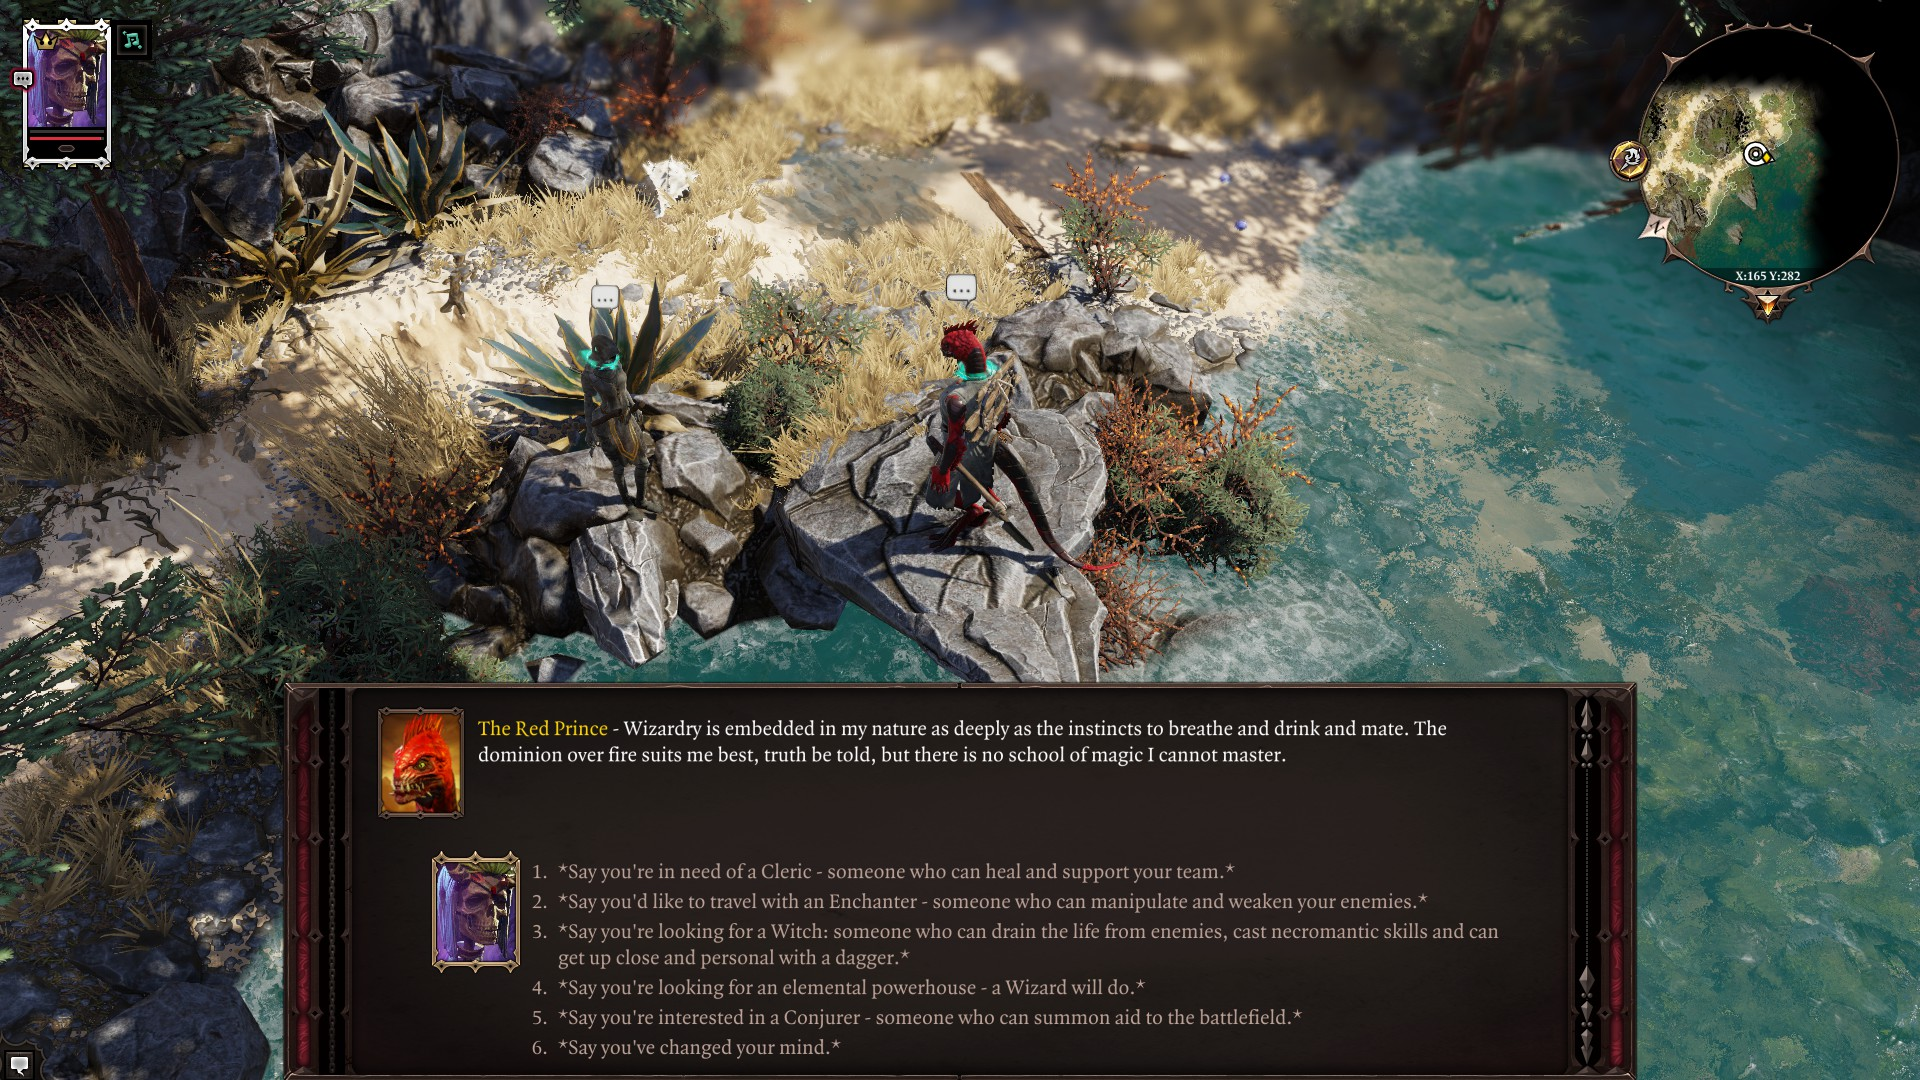 Divinity original sin 2 character creation and beginners tips in original sin 2 the characters your recruit in game give you a handful of dialogue choices once they decide to join you and you can shape them any way forumfinder Gallery